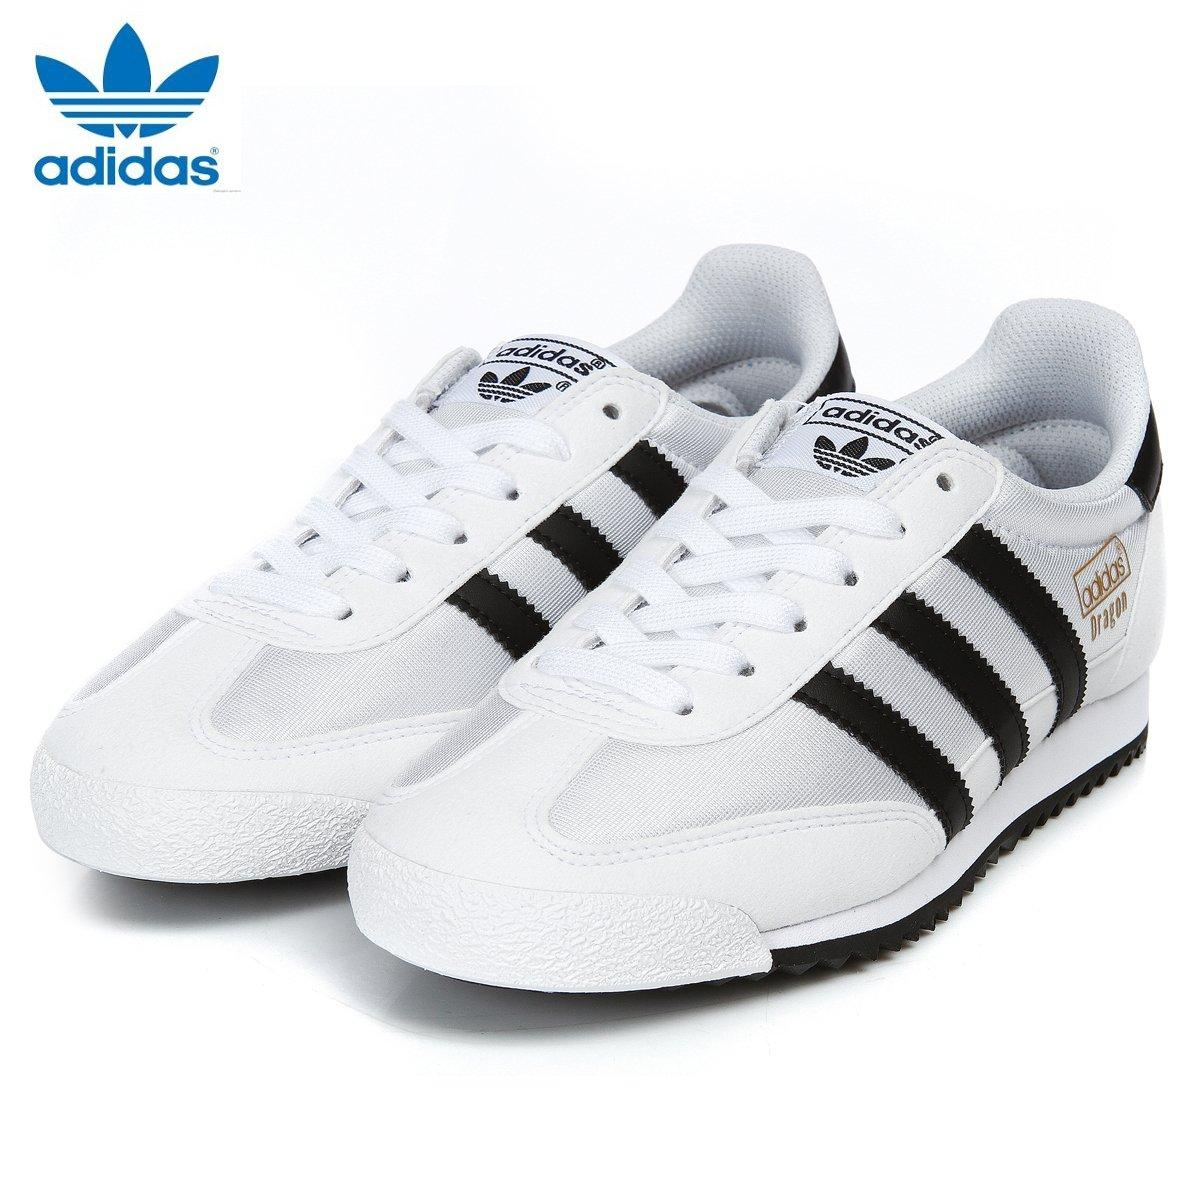 1b6f13302863 Product details of Adidas Originals Dragon OG Vintage BB1270 Casual shoes  white Black